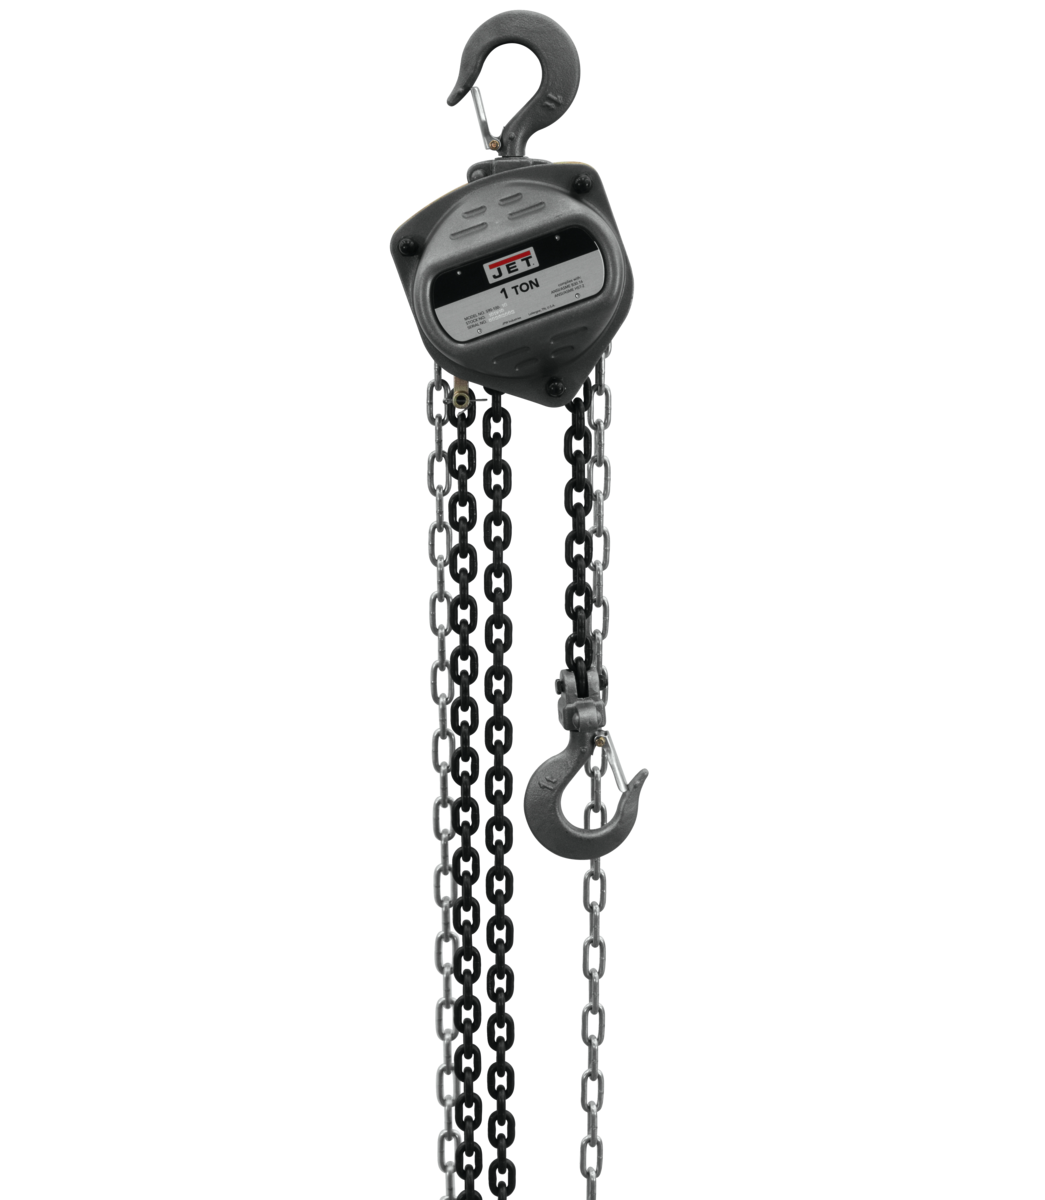 S90-100-30, 1-Ton Hand Chain Hoist With 30' Lift